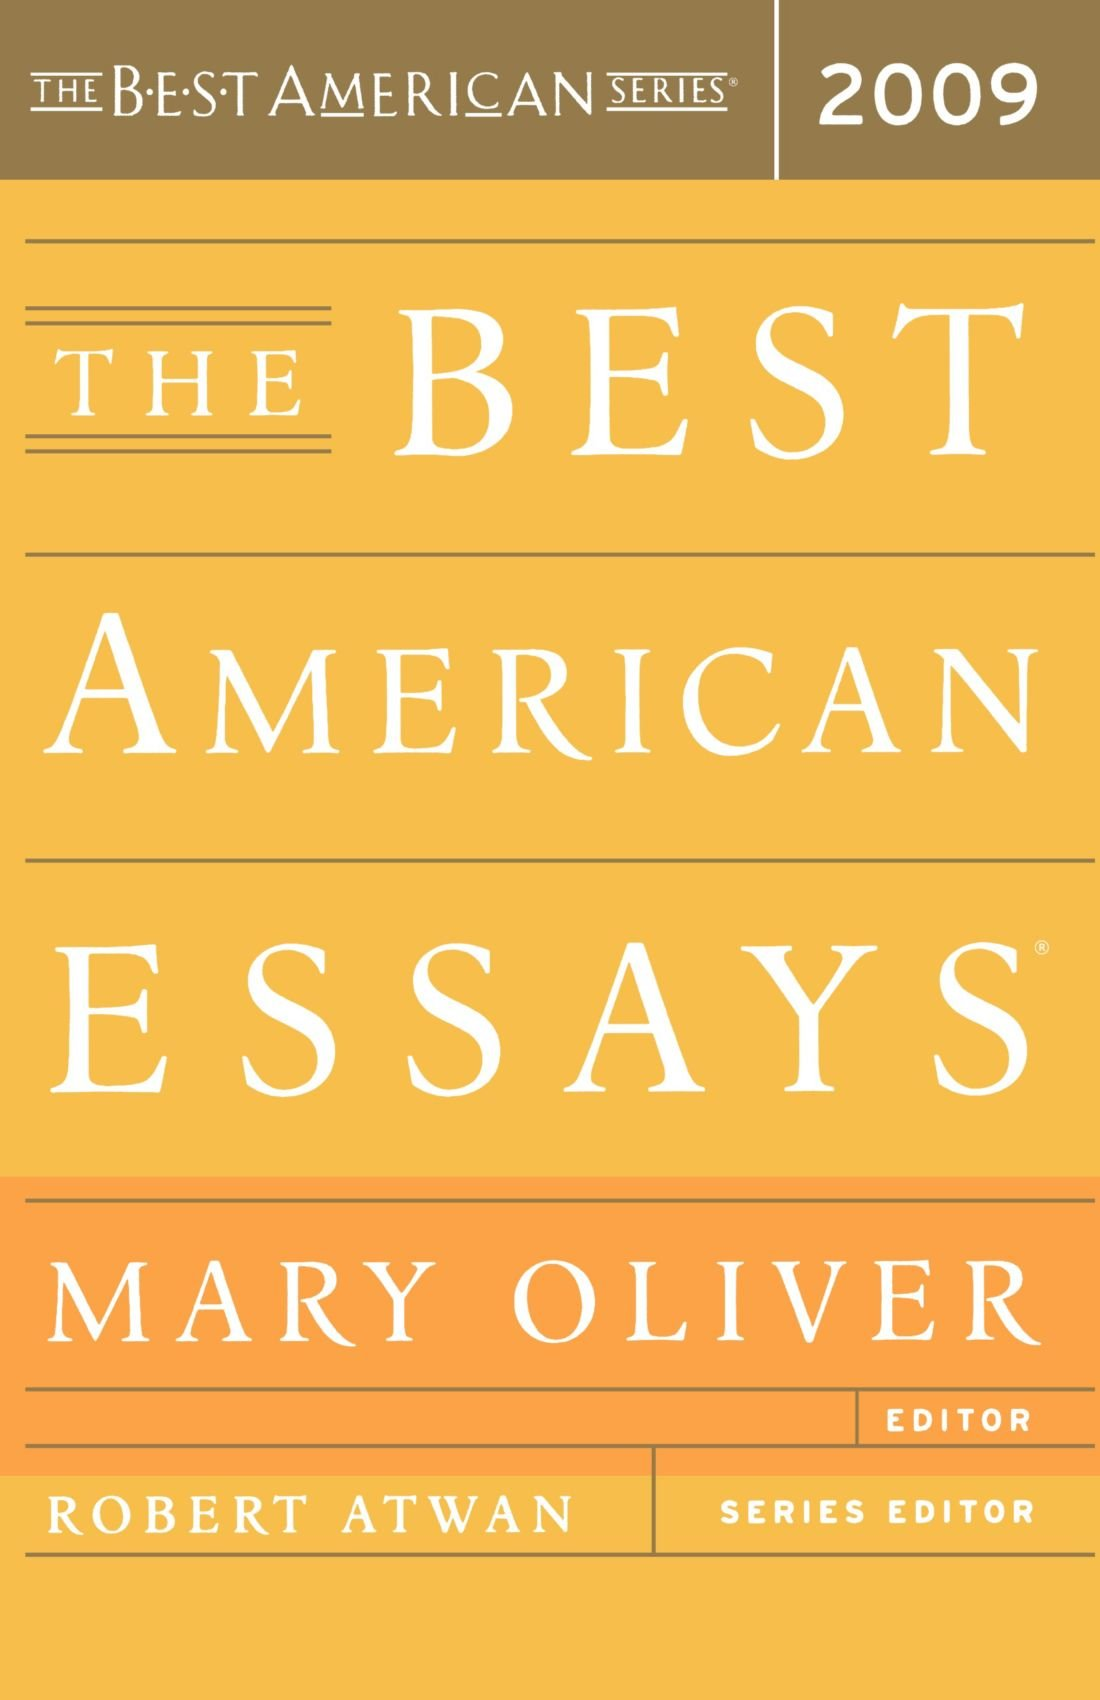 009 617qb5slhfl Essay Example Best American Striking Essays 2017 Table Of Contents The Century Pdf Full